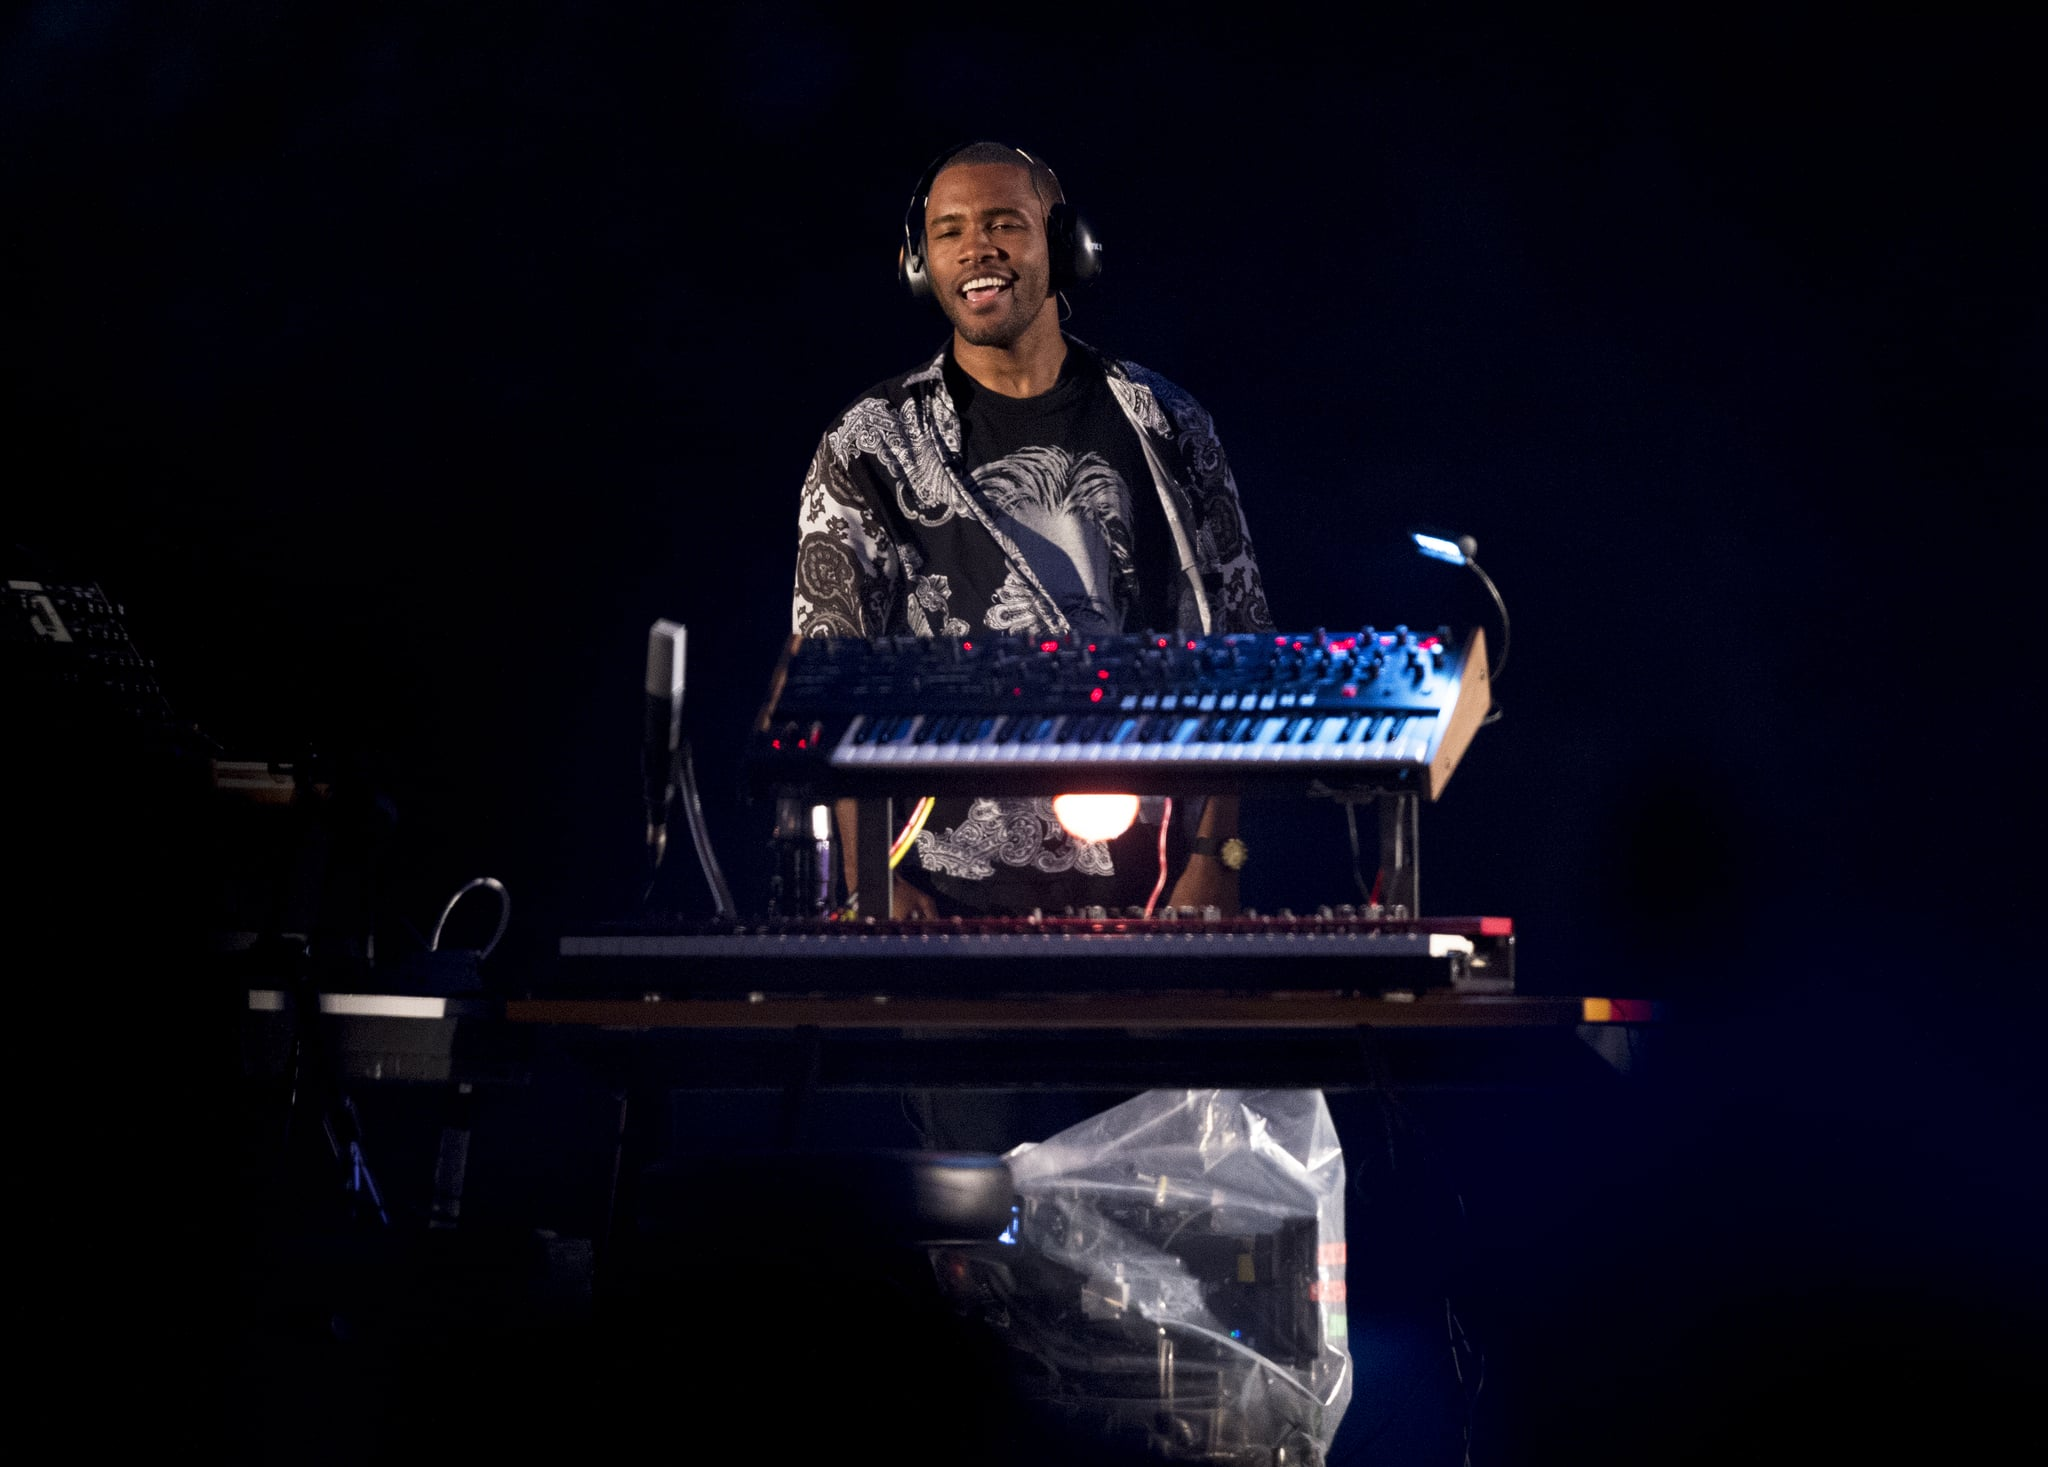 MANCHESTER, ENGLAND - JUNE 11: Frank Ocean performs at The Parklife Festival 2017 at Heaton Park on June 11, 2017 in Manchester, England. (Photo by Visionhaus#GP/Corbis via Getty Images))